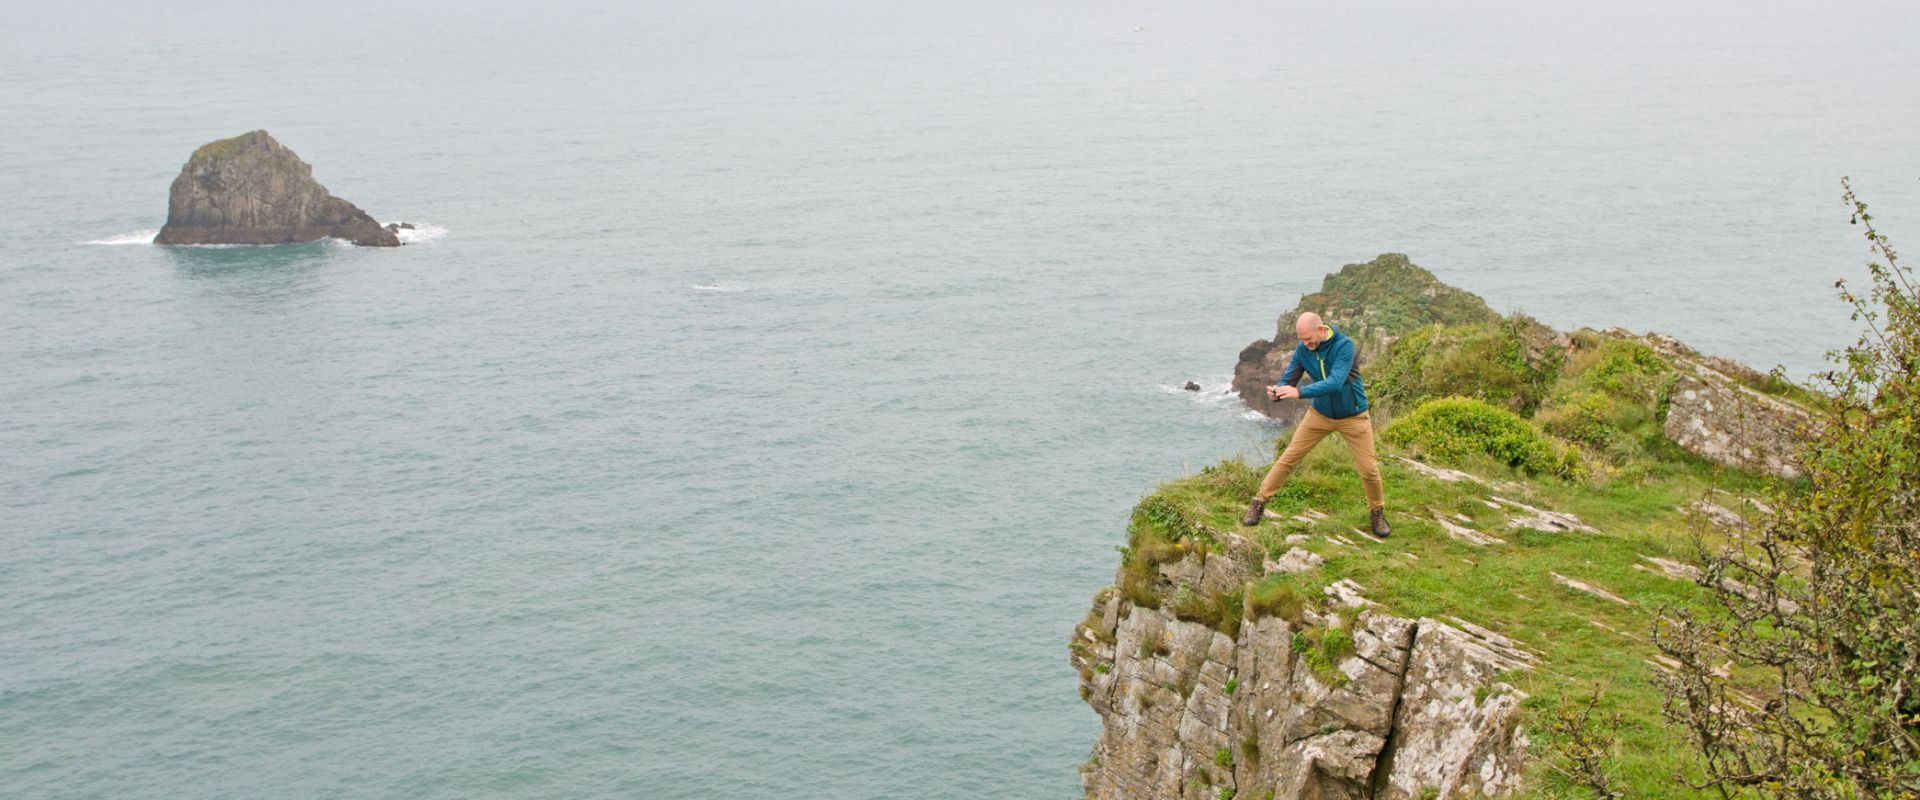 Guest looking over the cliffs into the sea below at Berry Head near Brixham